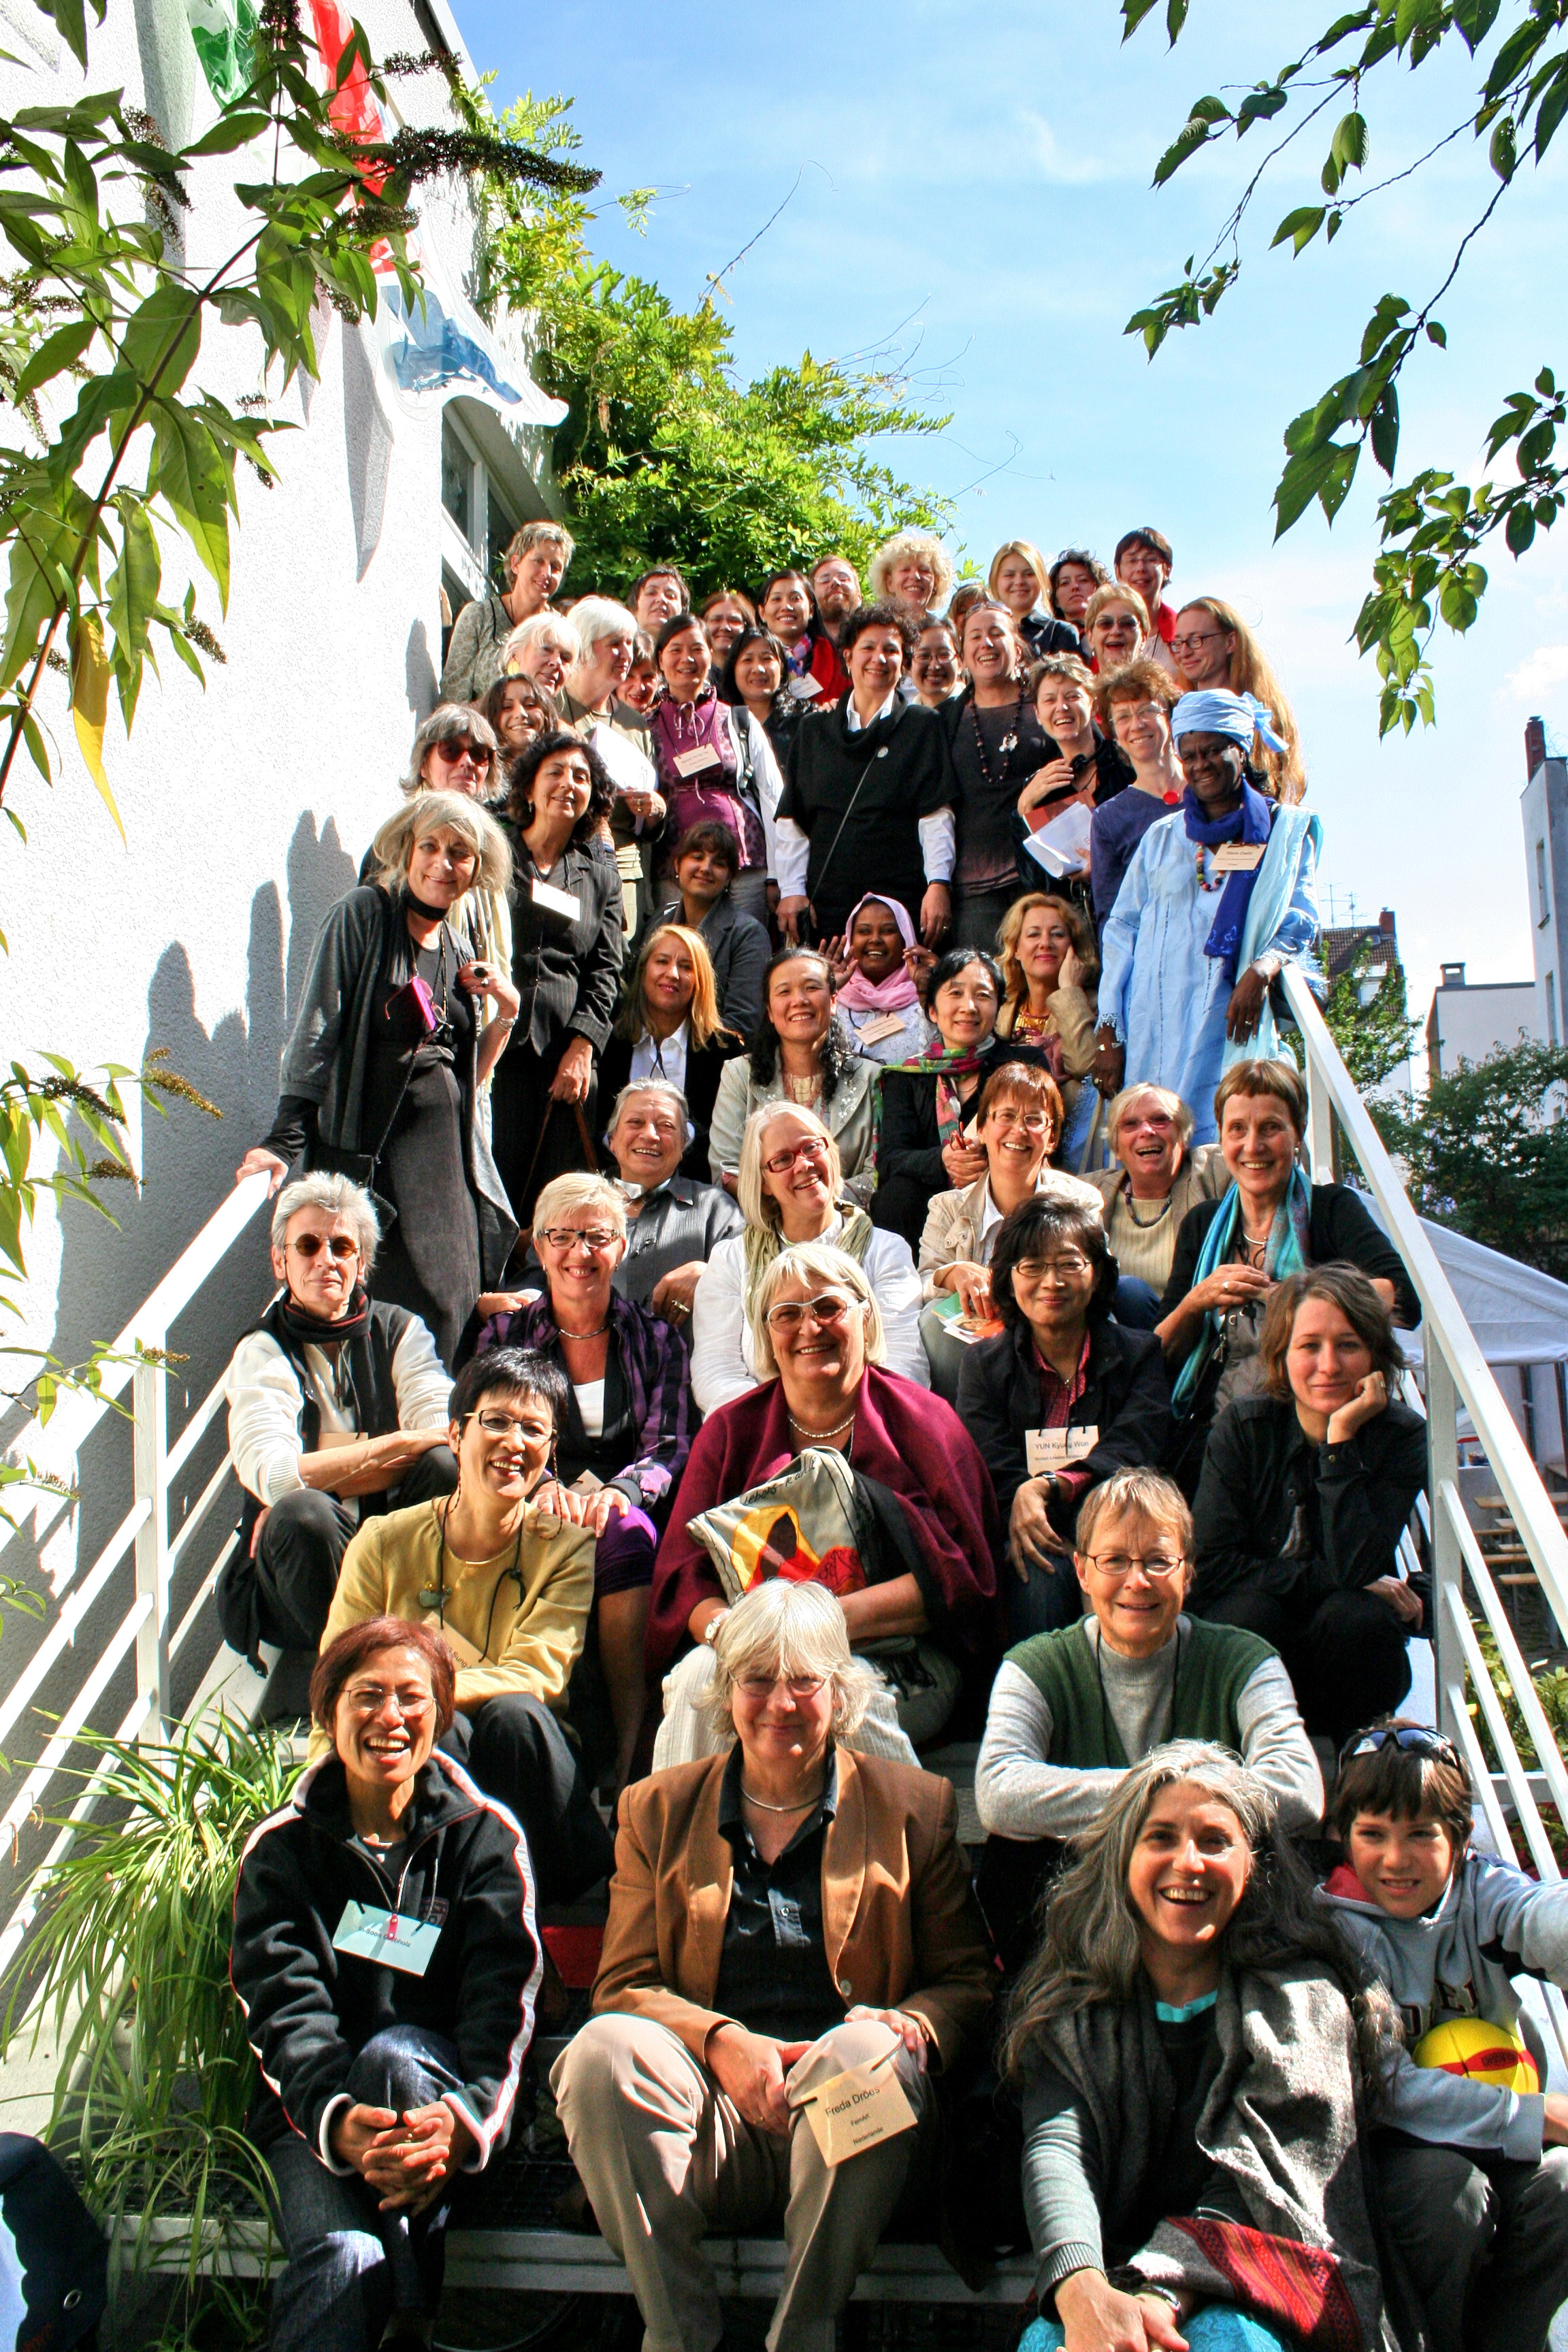 Participants of the 2009 conference assemble on the stairs as a group